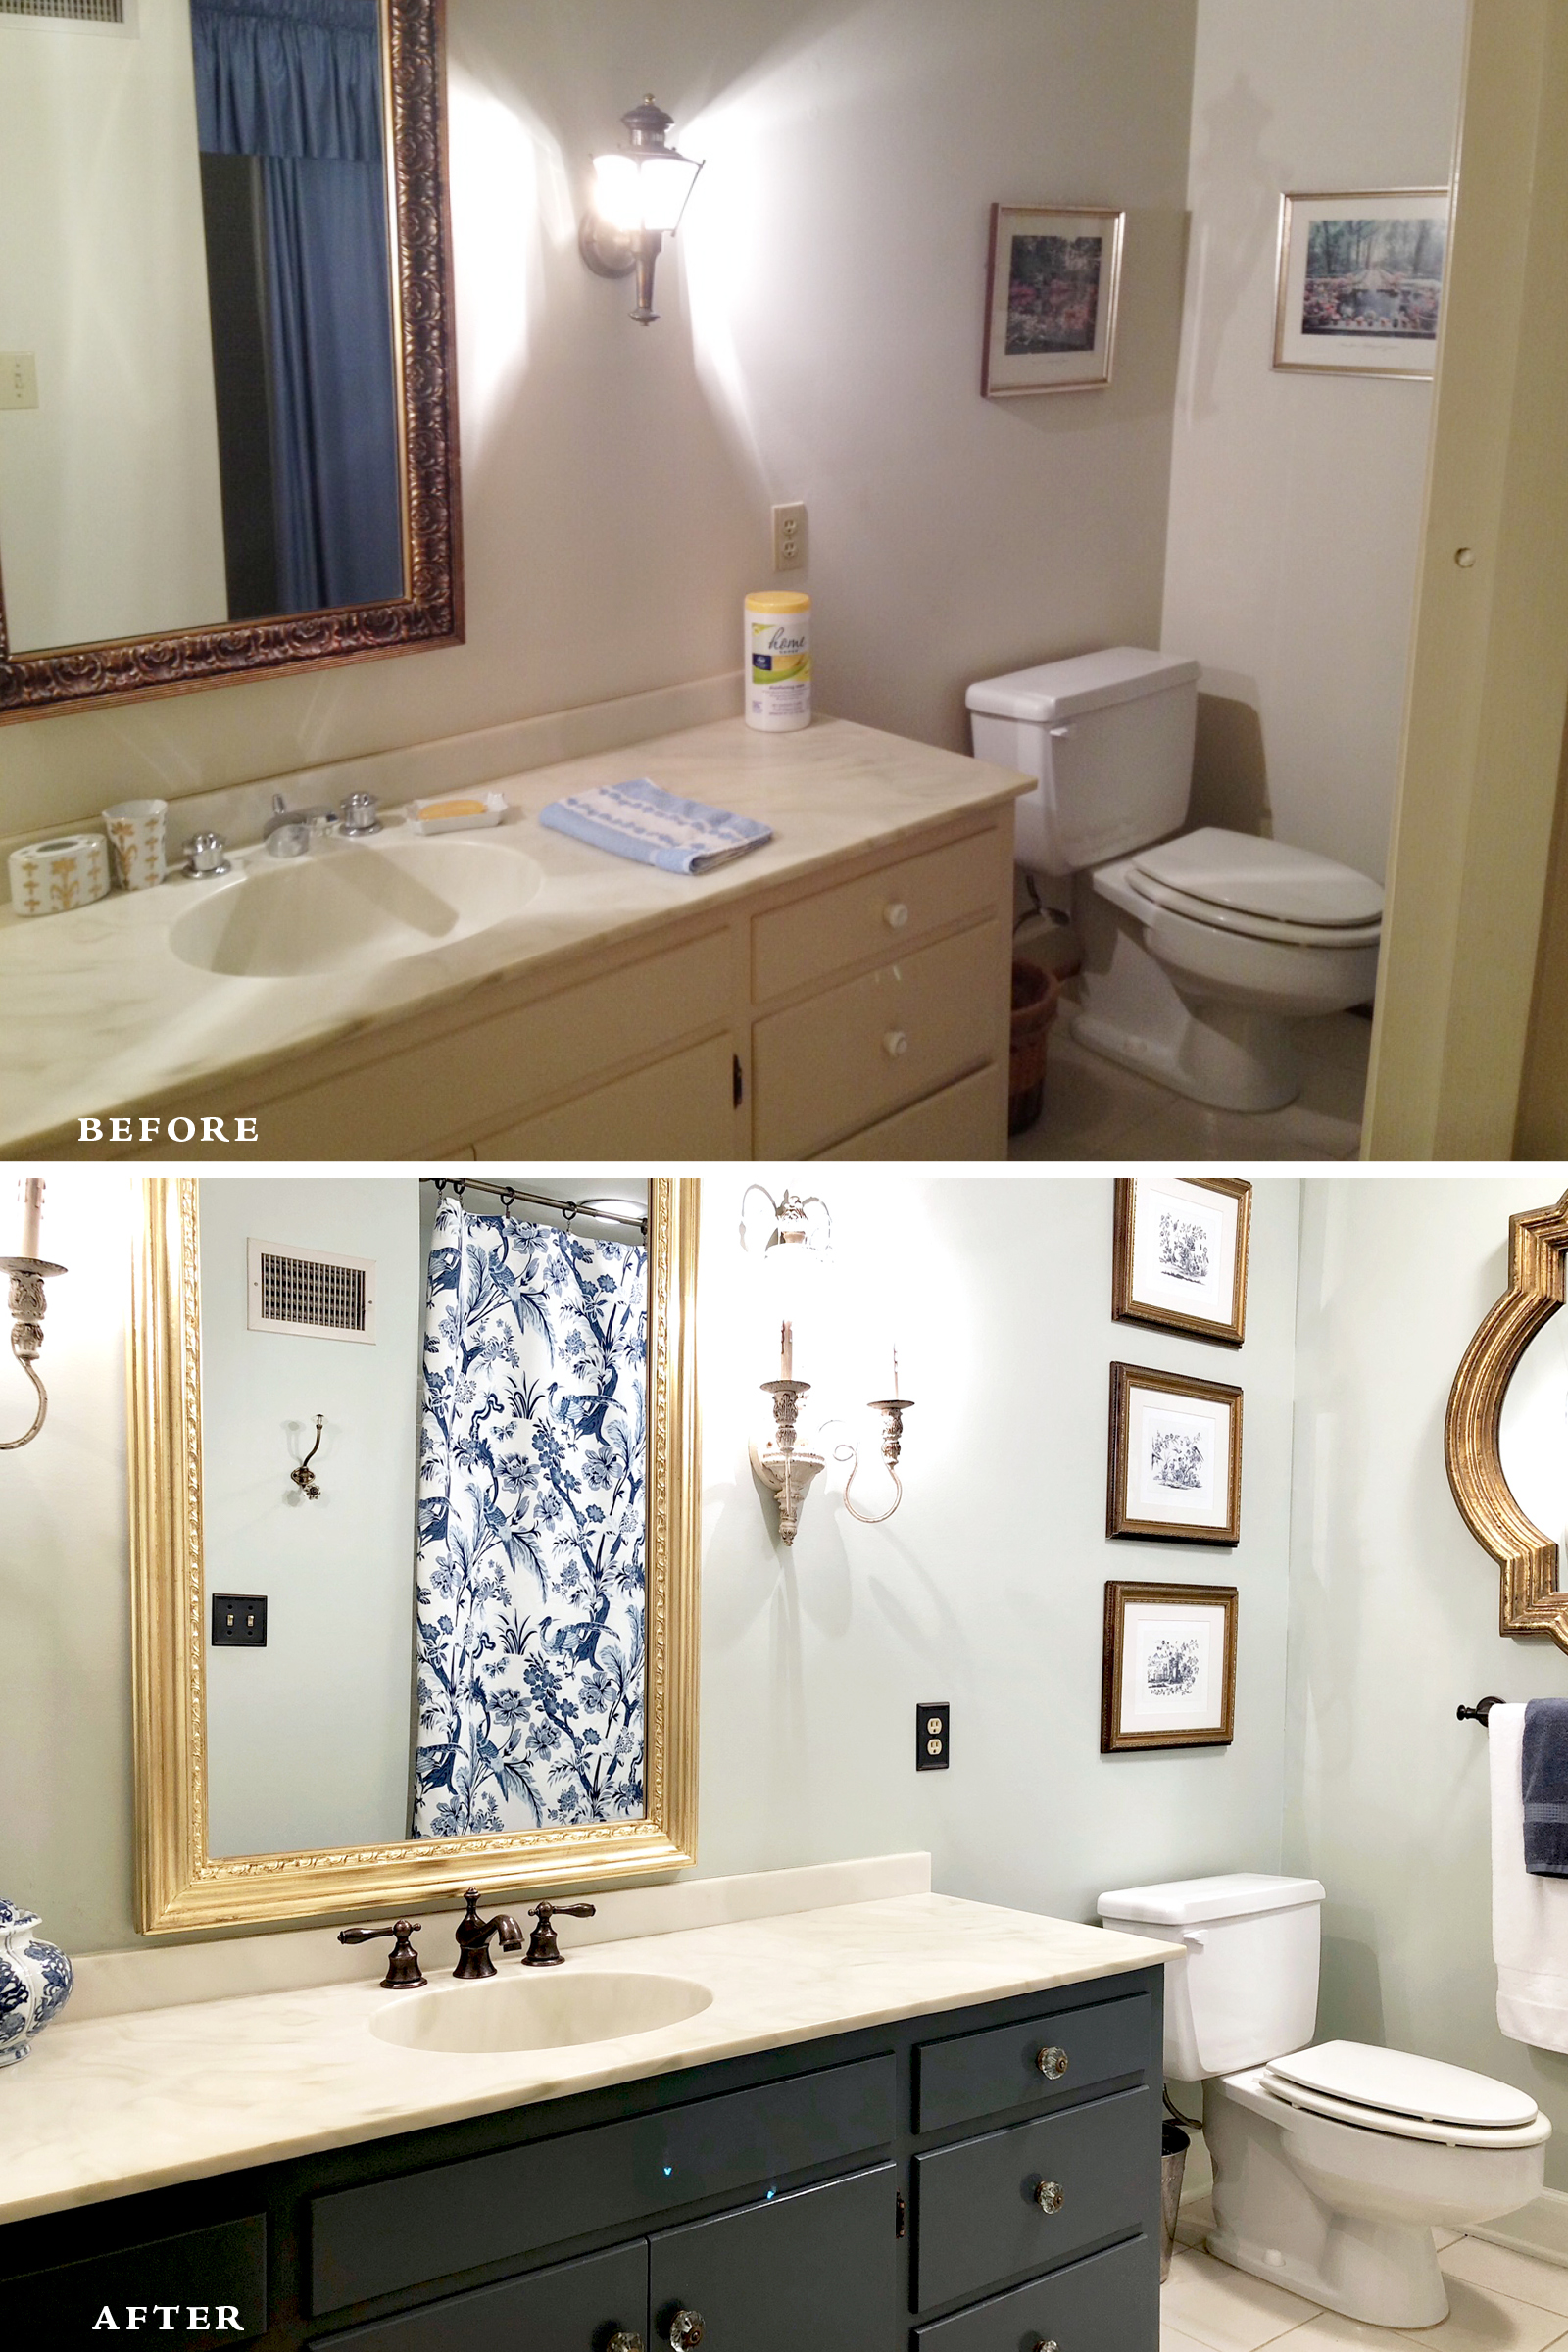 The top photo is this bathroom's original condition when we bought the house 4 years ago.